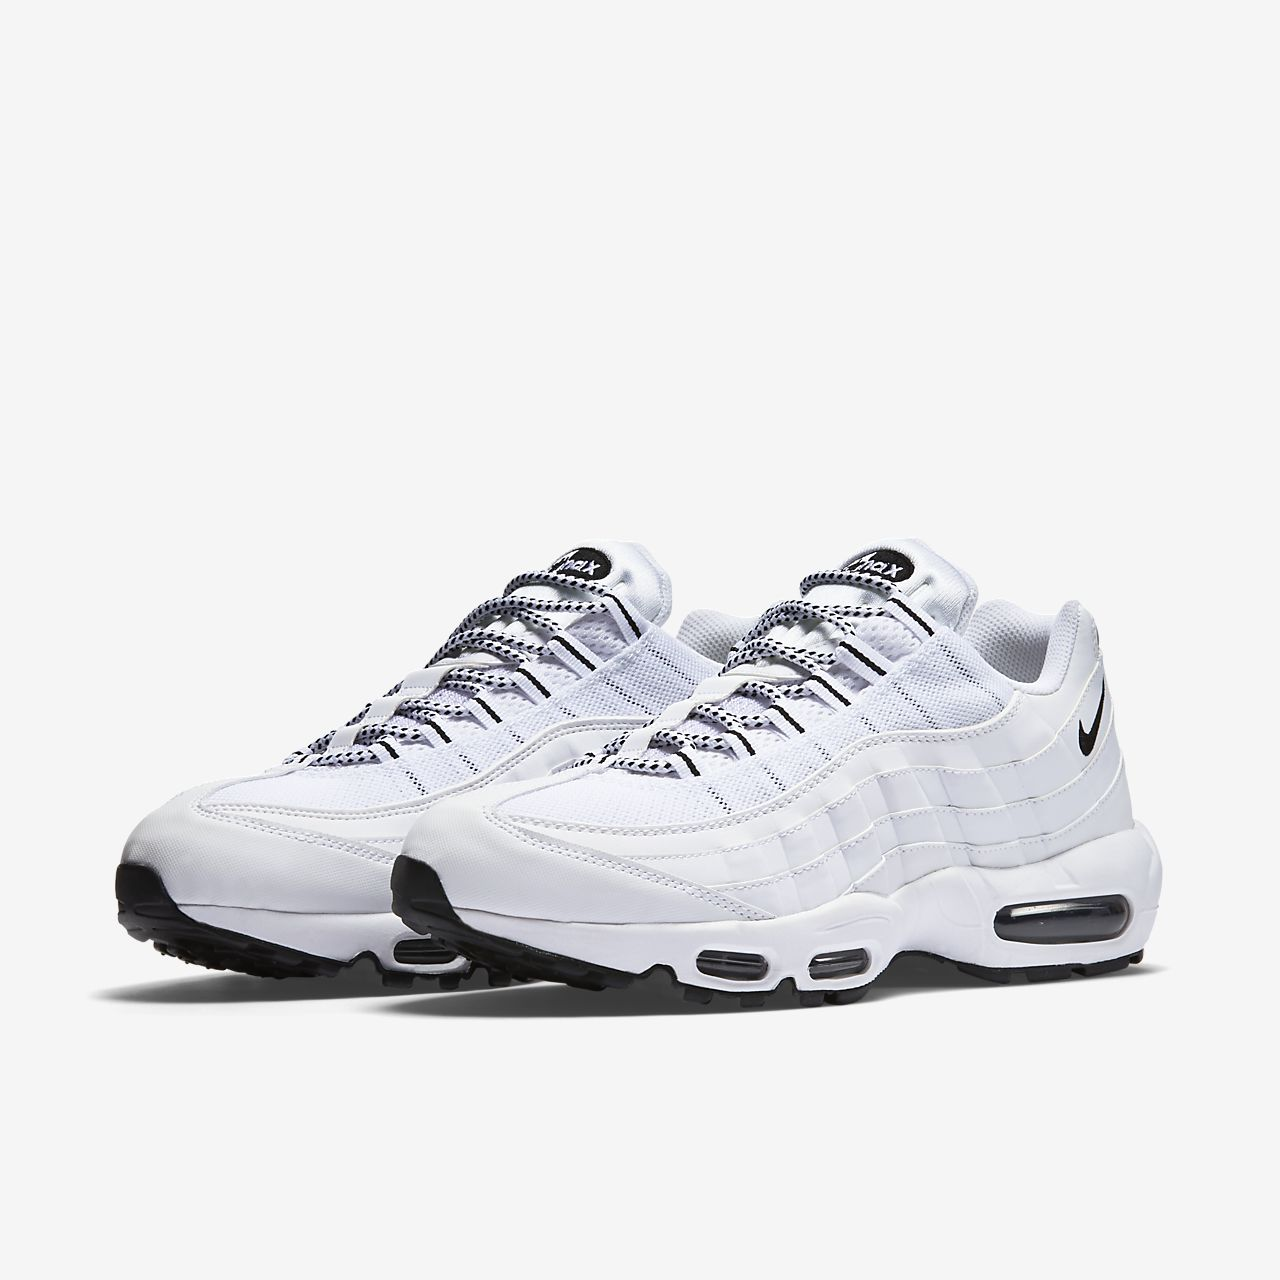 buy online f5257 c55a8 Nike Air Max 95 Men's Shoe